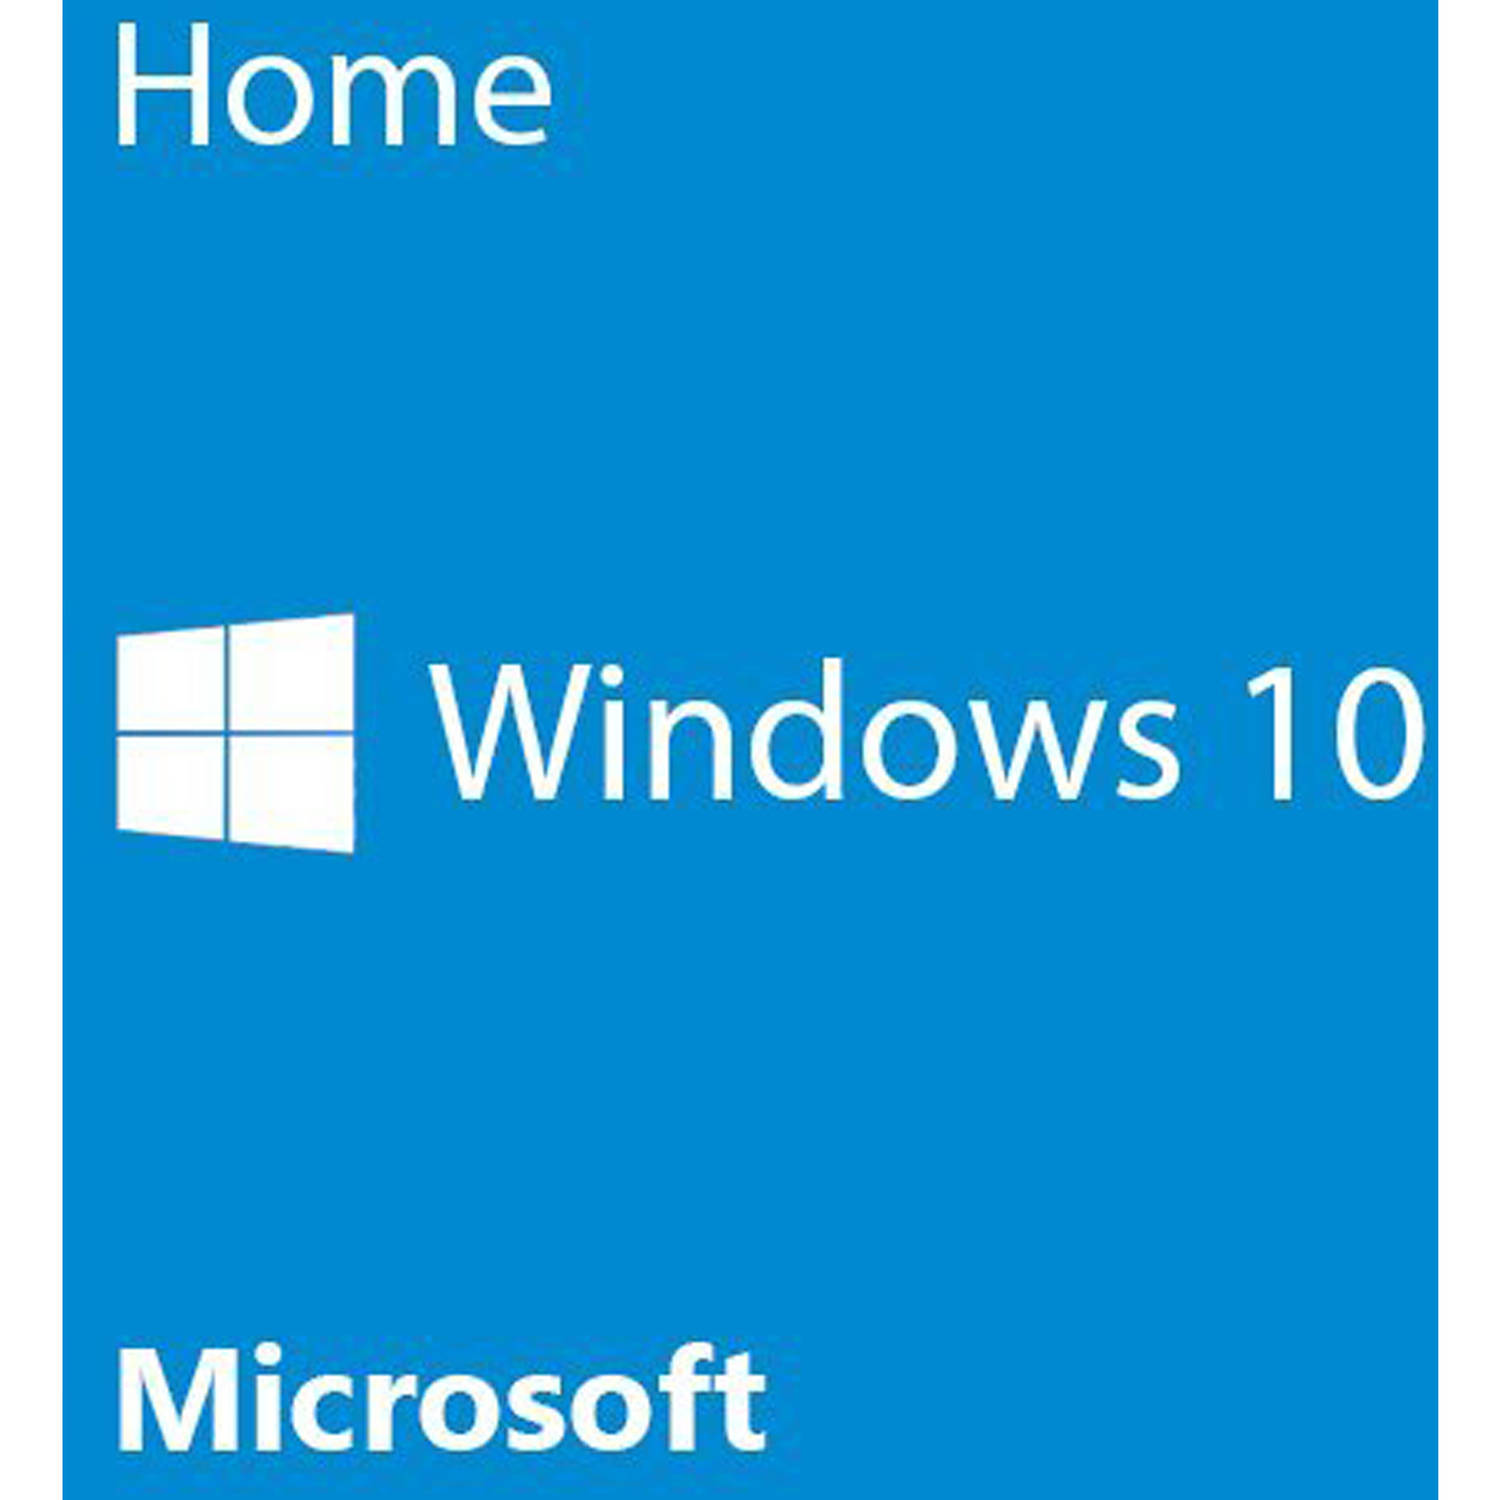 Microsoft Windows 10 64-Bit Edition